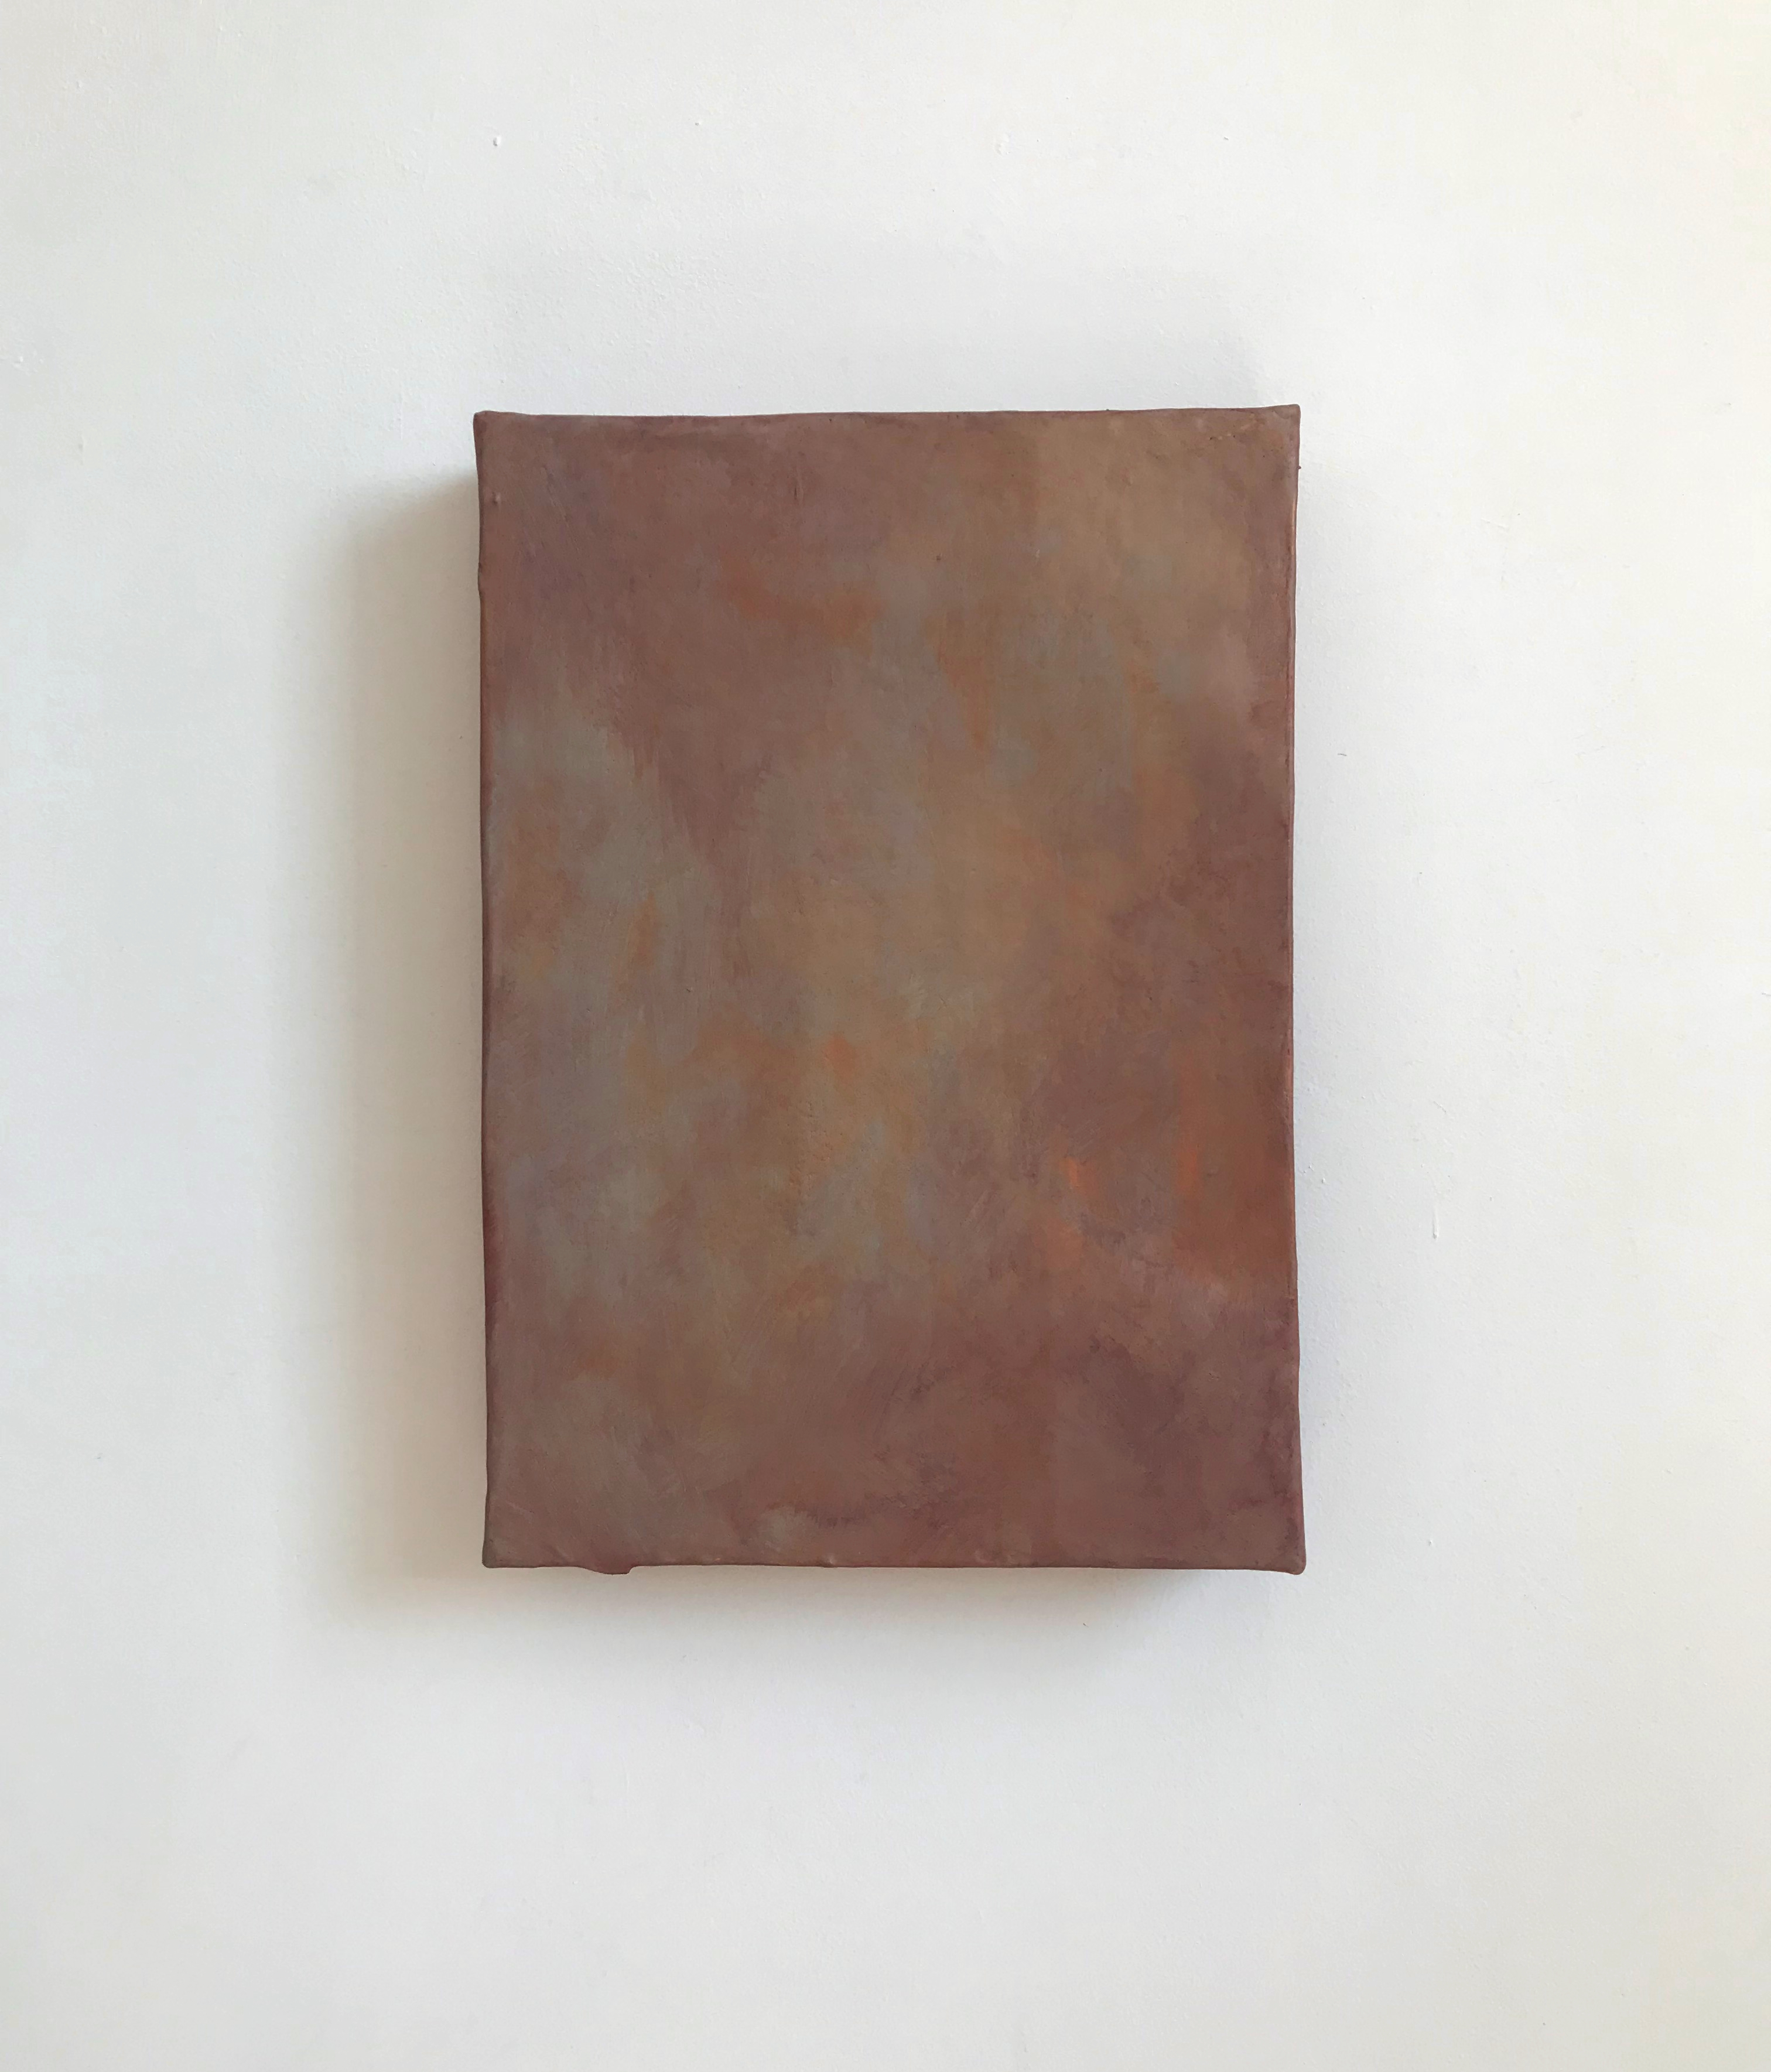 Afterglow | Charlie Franklin, 2018 | oil, metallic paint, chalk paint, emulsion, gesso, cardboard | 35cm x 24.5cm x 5cm | image: courtesy of the artist